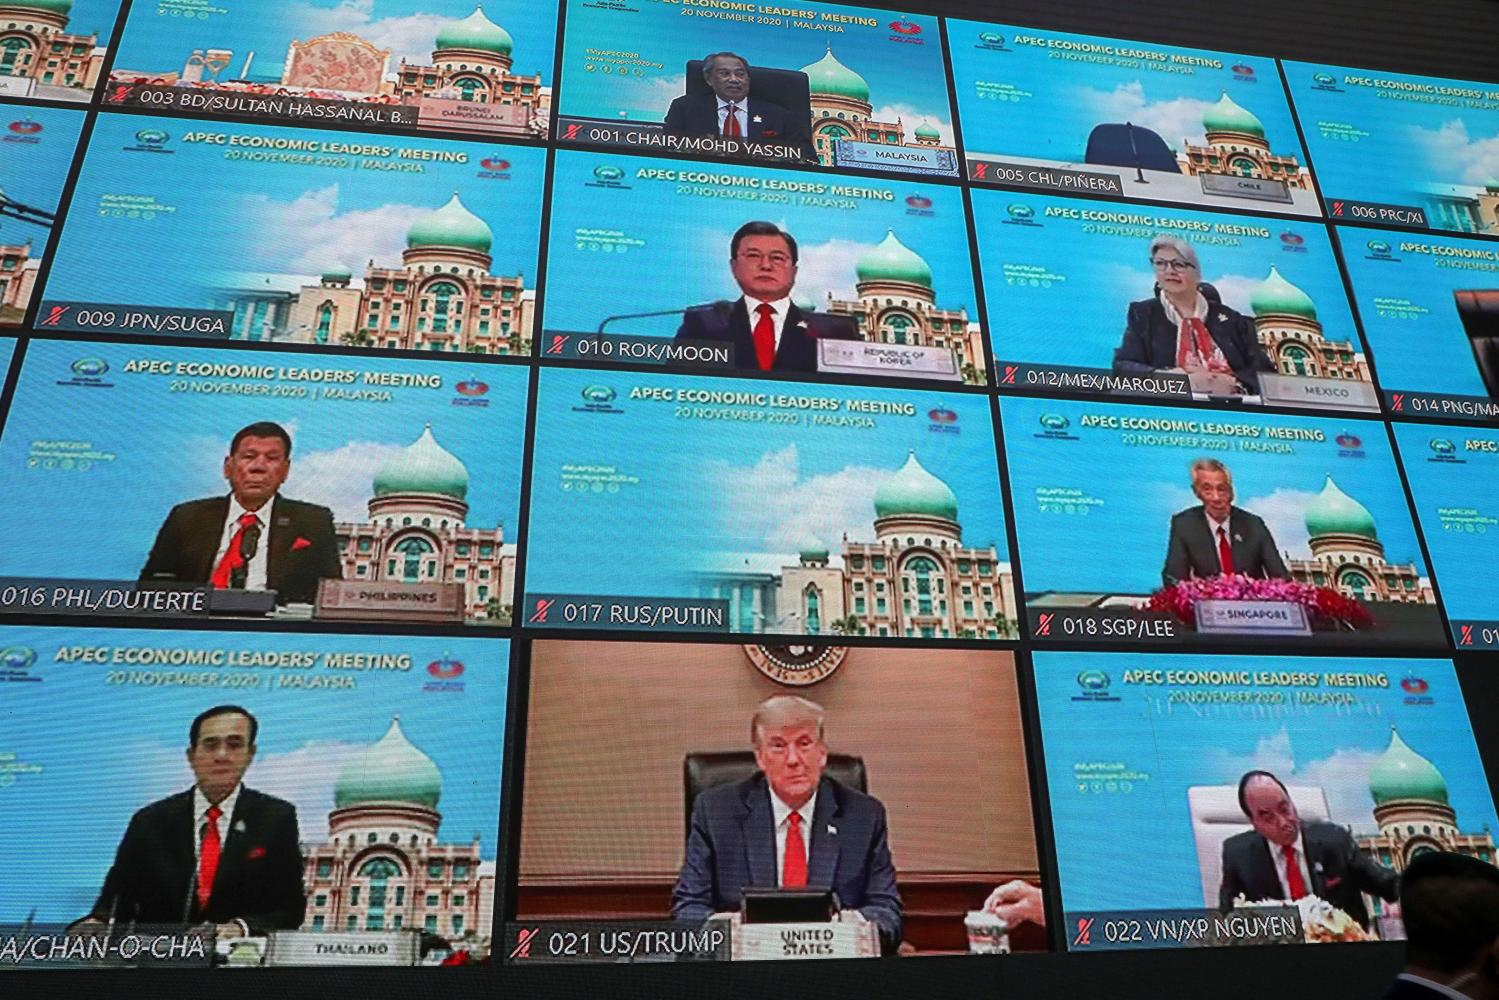 A view showing the virtual Apec Economic Leaders' Meeting 2020, in Kuala Lumpur, Malaysia, on Friday. REUTERS